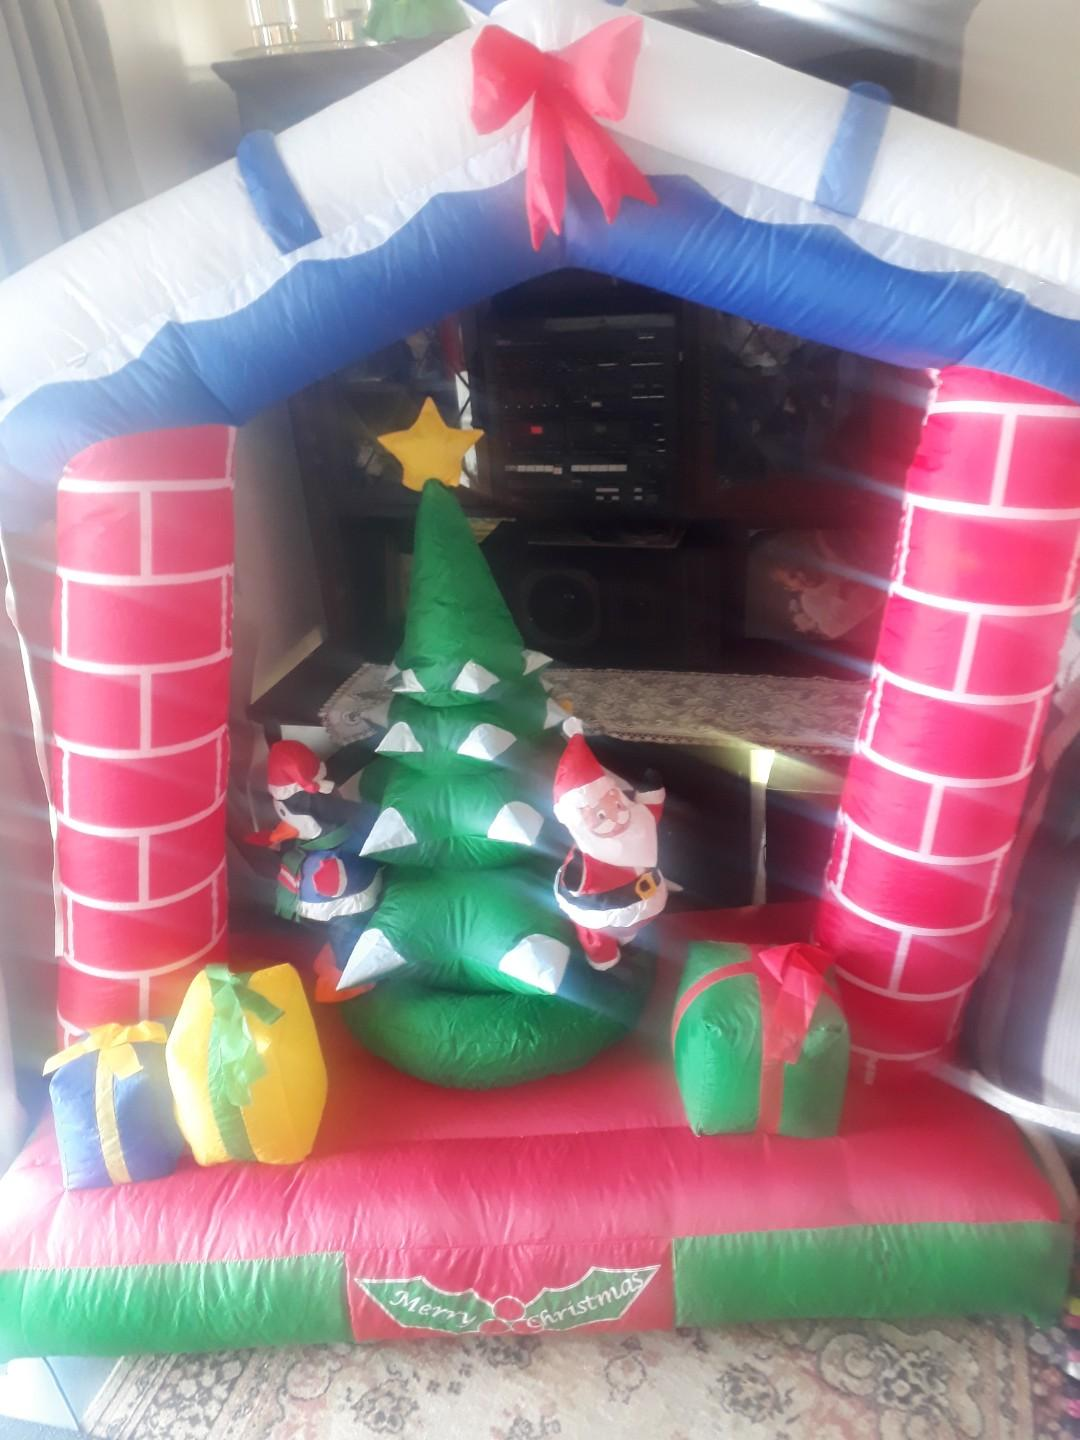 Merry Christmas spirited pop up with rotating xmas tree blow up beauty